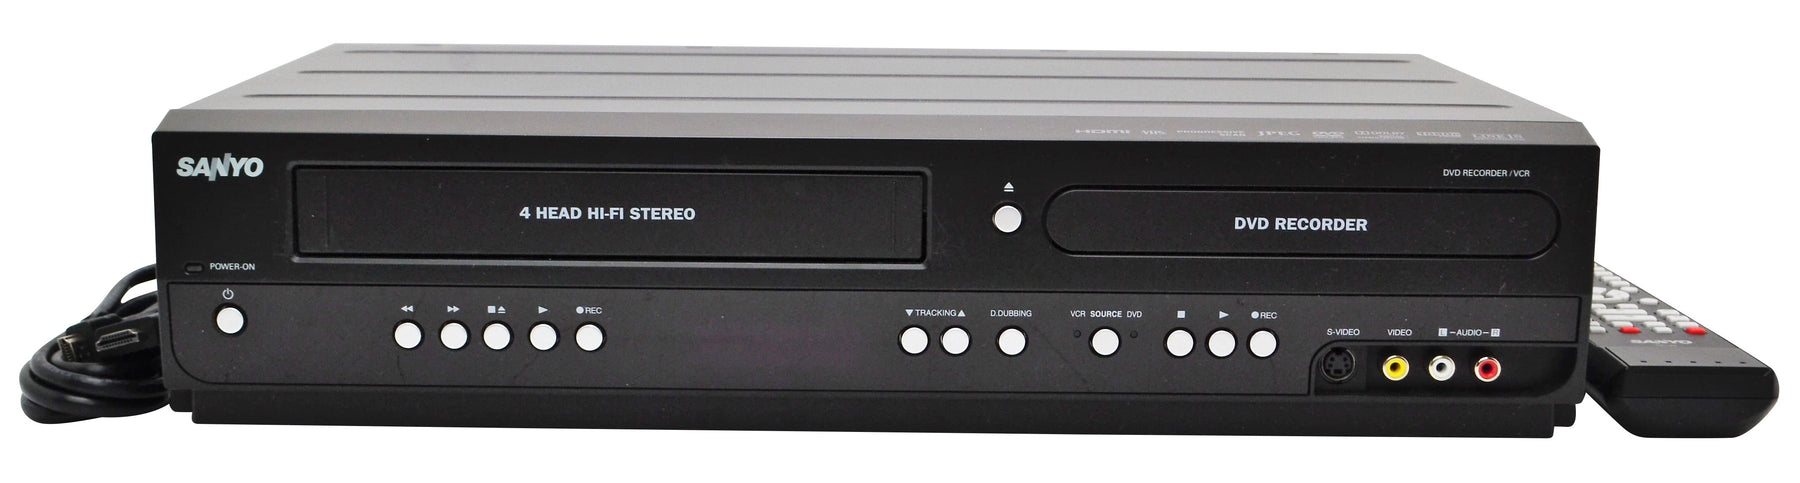 One Of The Best DVD VCR Combo Recorders (Sanyo FWZV475F) - Still Available at ForTheLow.Net